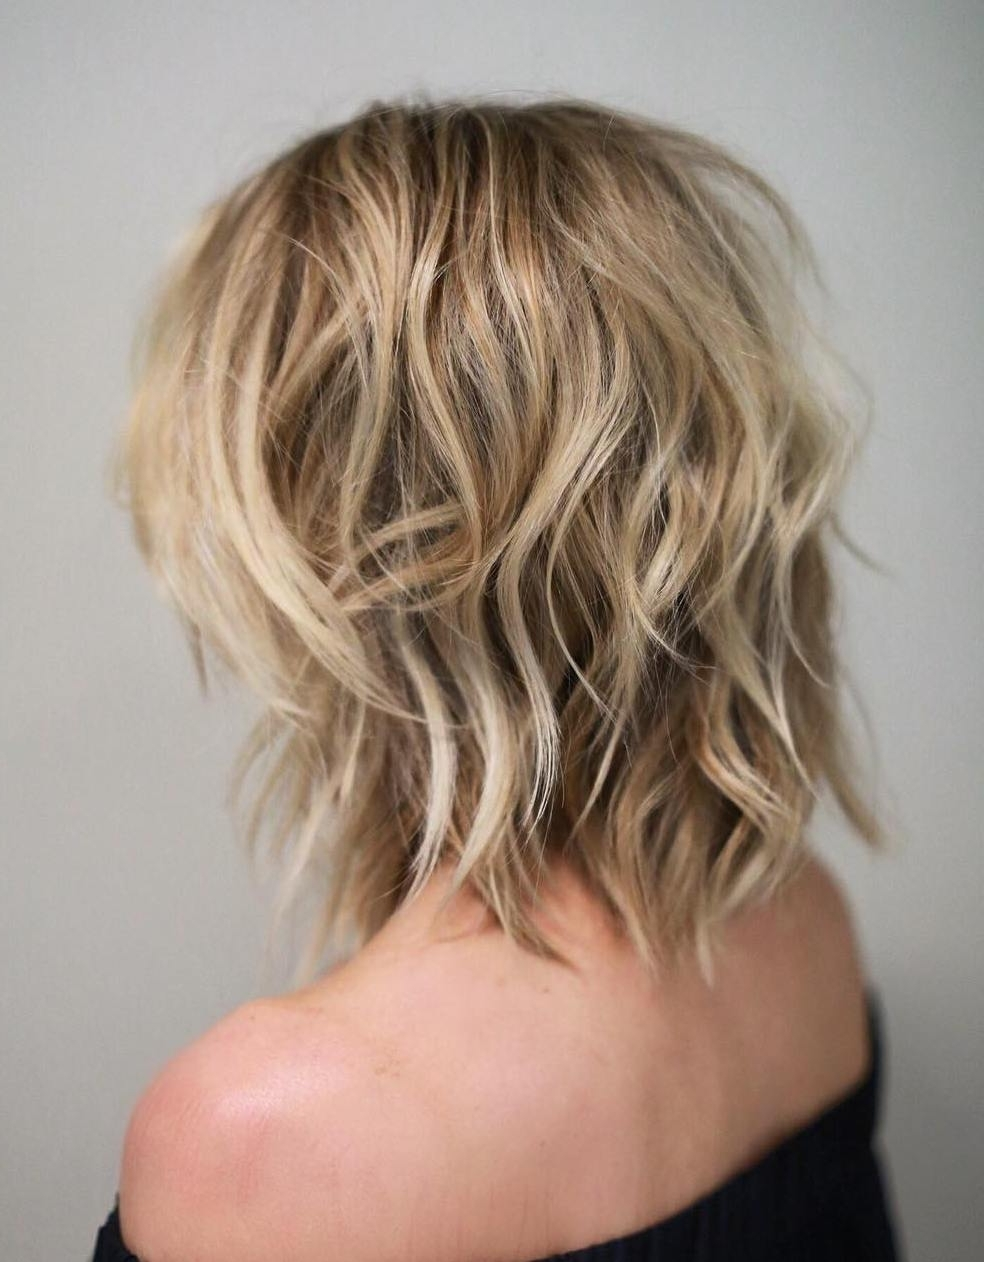 Shag Haircuts And Hairstyles In 2018 — Therighthairstyles Pertaining To Most Popular Shaggy Layered Hairstyles For Long Hair (View 12 of 15)